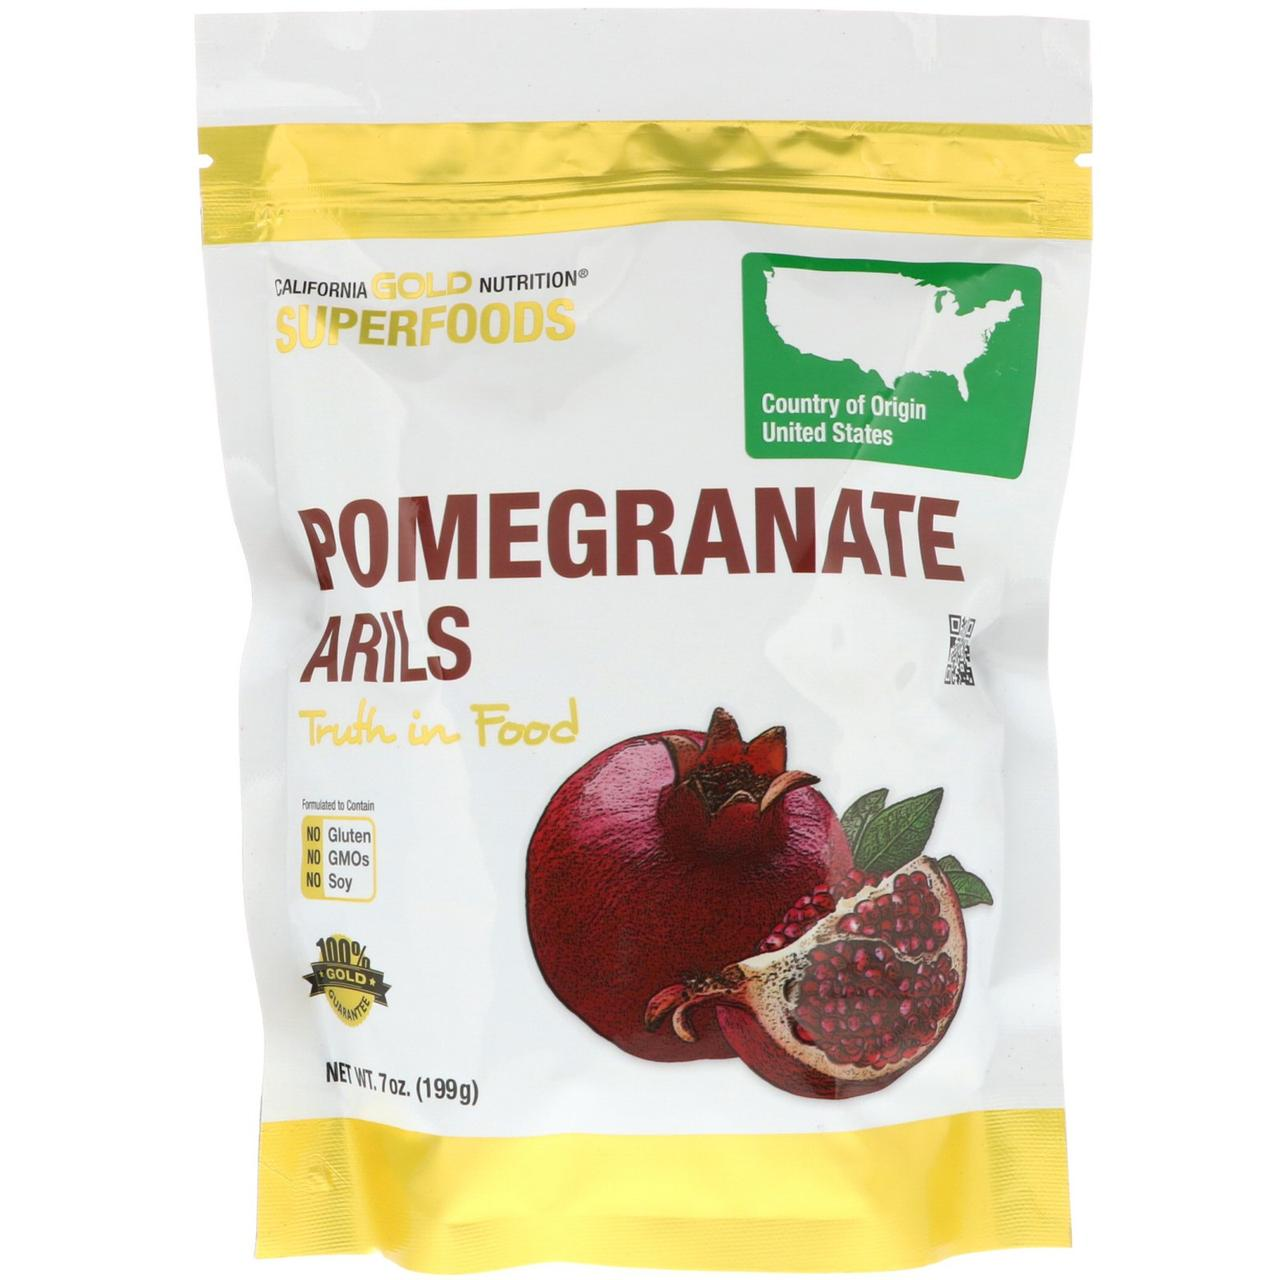 "Зерна граната California GOLD Nutrition, Superfoods ""Pomegranate Arils"" сушені (199 г)"